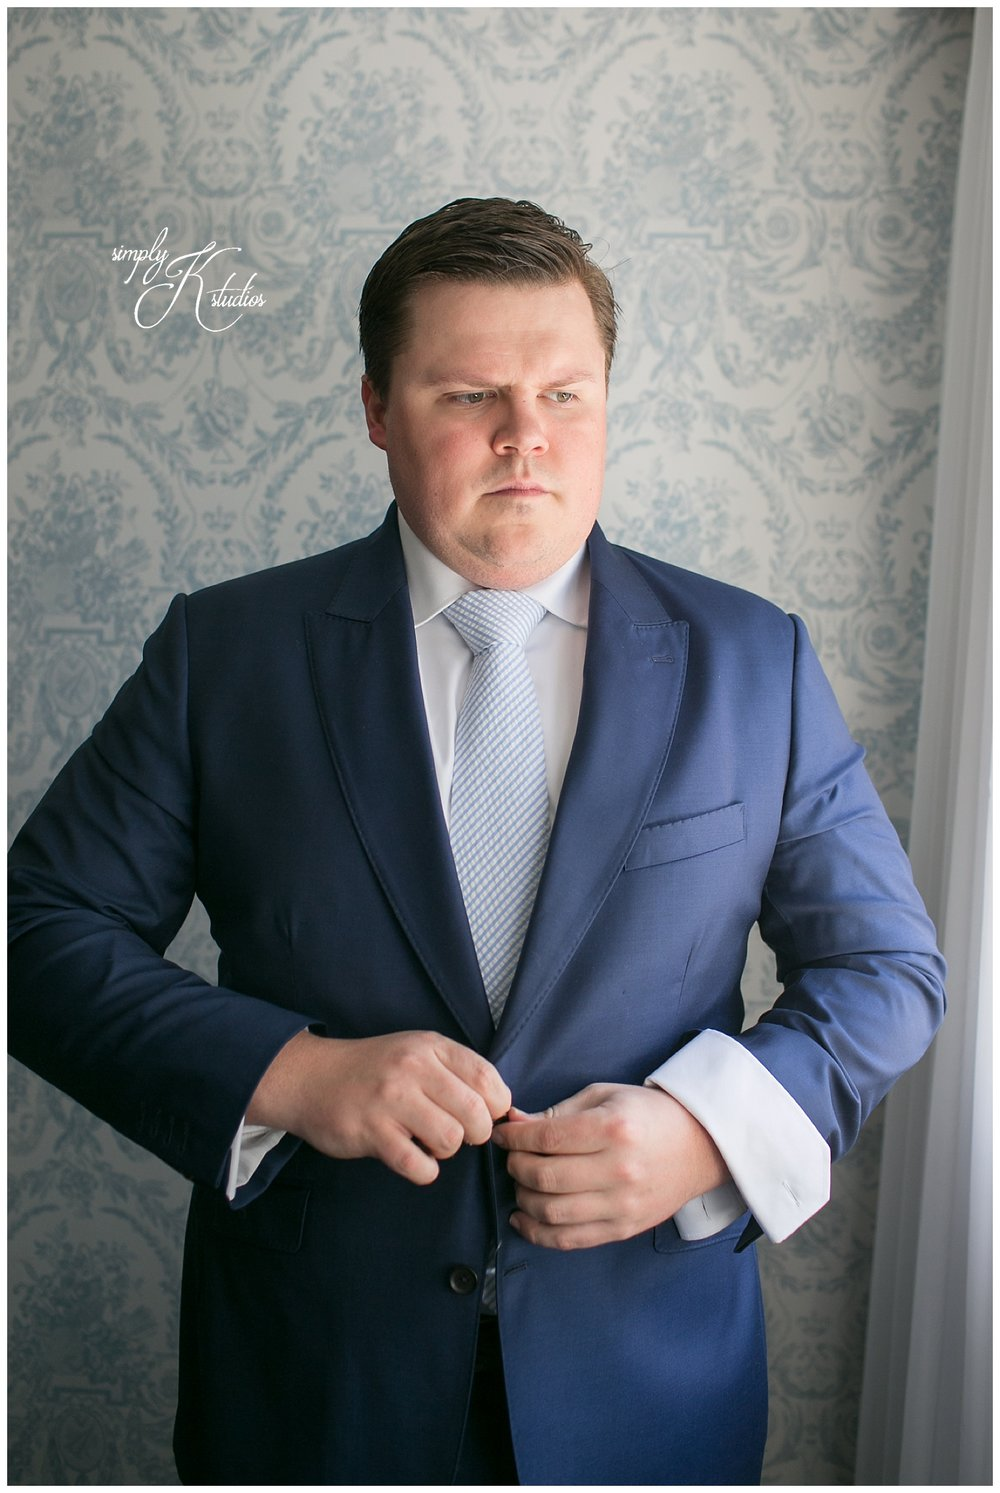 Navy Blue Suit for a Wedding.jpg